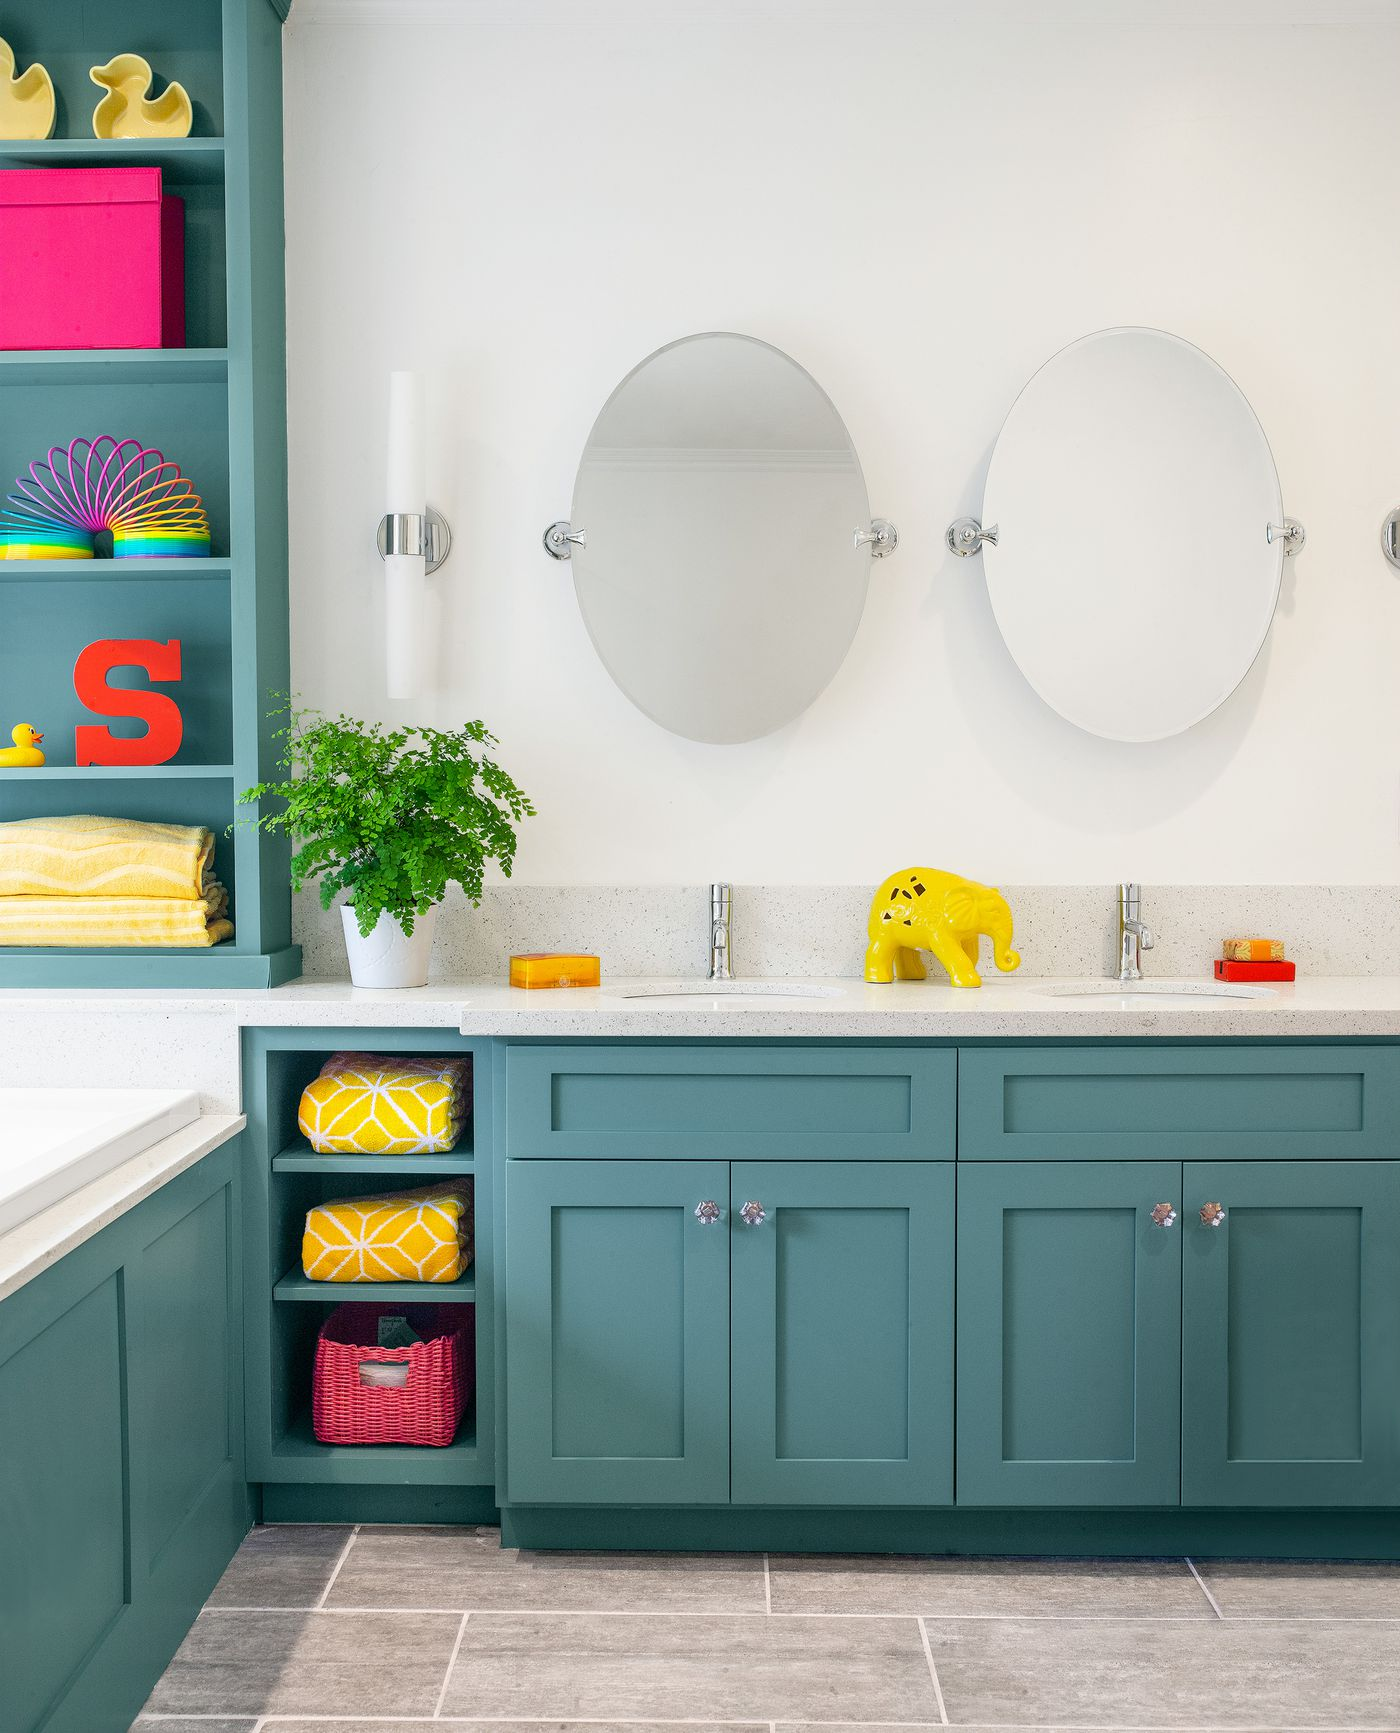 Before And After Bath A Versatile Kid Friendly Space This Old House